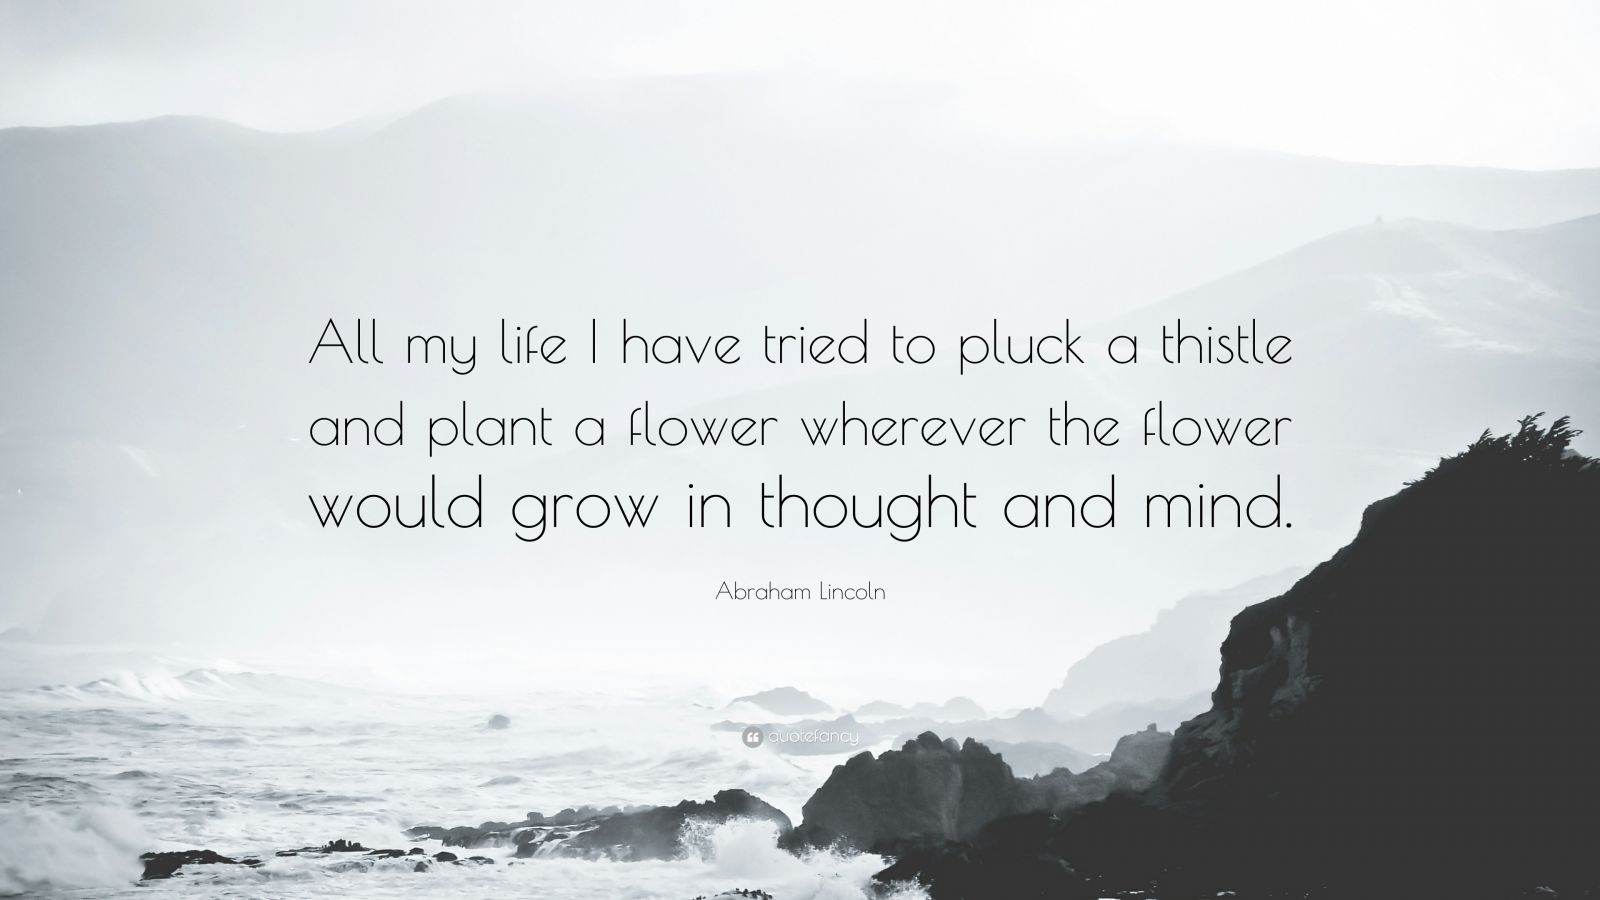 """Abraham Lincoln Quote: """"All my life I have tried to pluck a thistle and plant a flower wherever the flower would grow in thought and mind."""""""